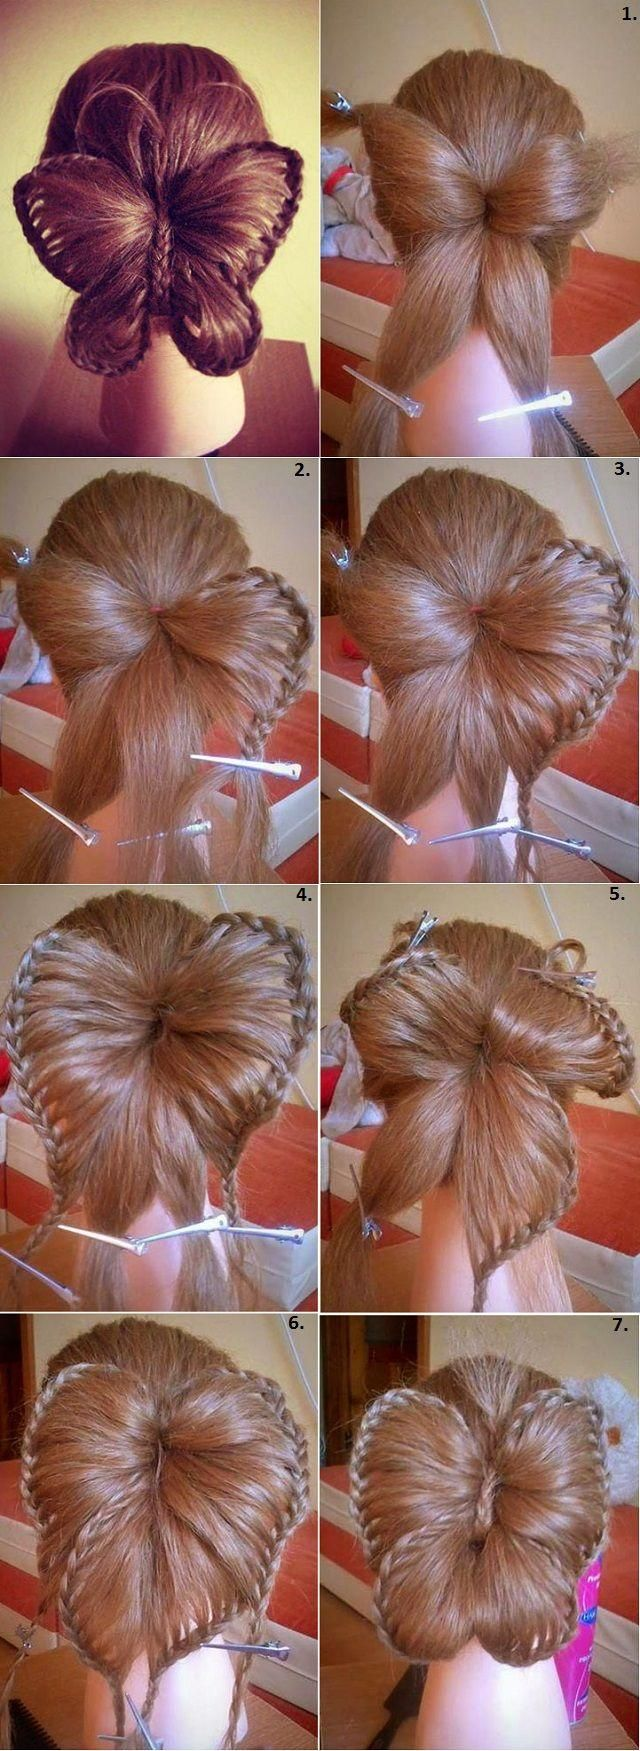 """Butterfly Hairstyle @Mindy Burton """"Cute Girls Hairstyles"""" Could you please do a video tutorial for this hairstyle? My sisters are begging for it :) Thank you!: Hair Ideas, Butterfly Hairstyle, Butterflies, Hair Styles, Cute Girls Hairstyles, Girl"""